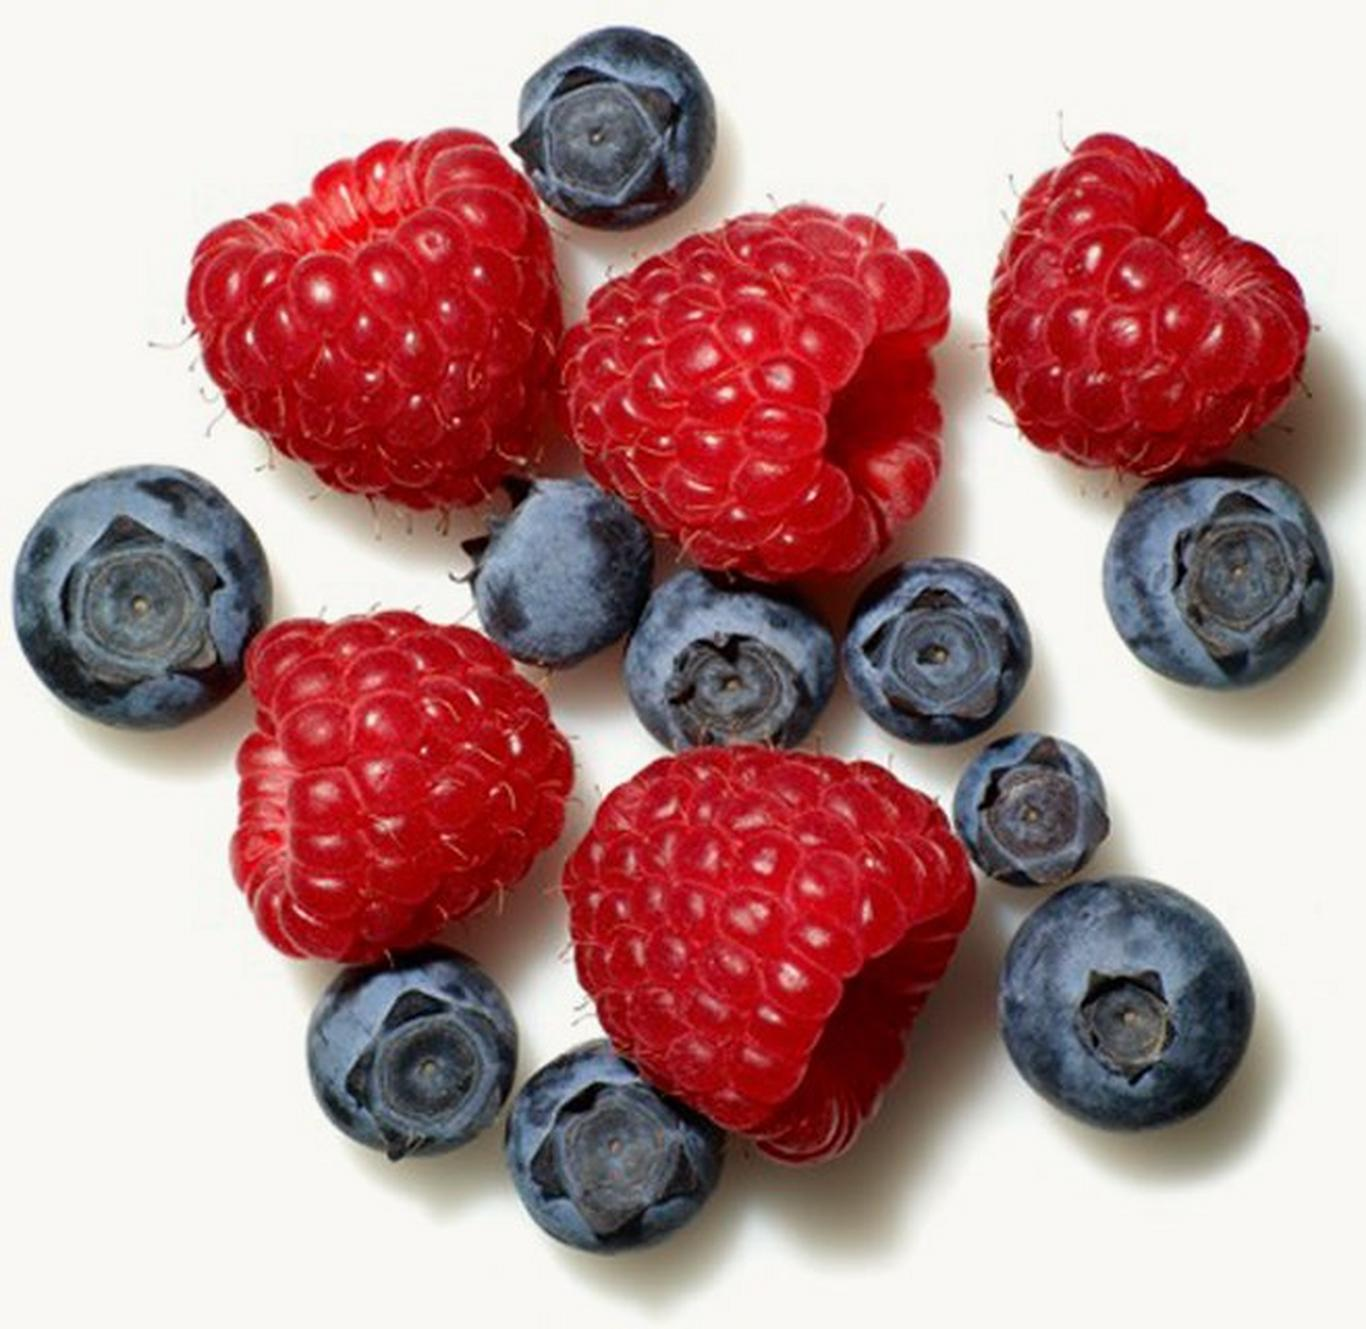 Choose fruits that are high in antioxidants such as blueberries, blackberries, raspberries and strawberries.